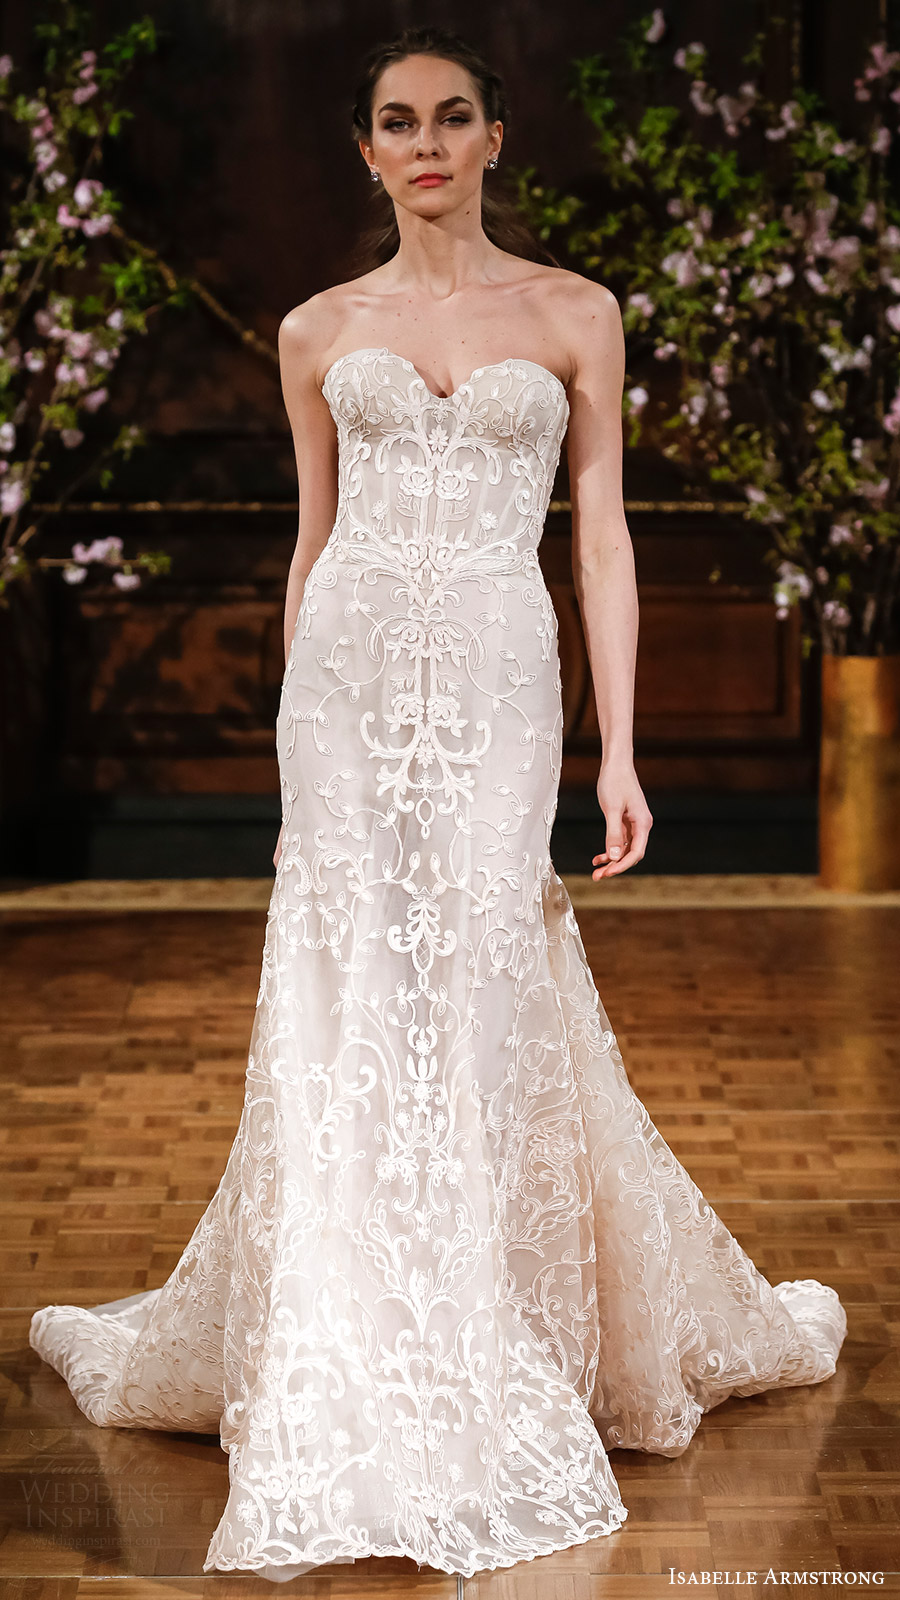 Isabelle armstrong spring 2017 wedding dresses wedding for Spring wedding dresses 2017